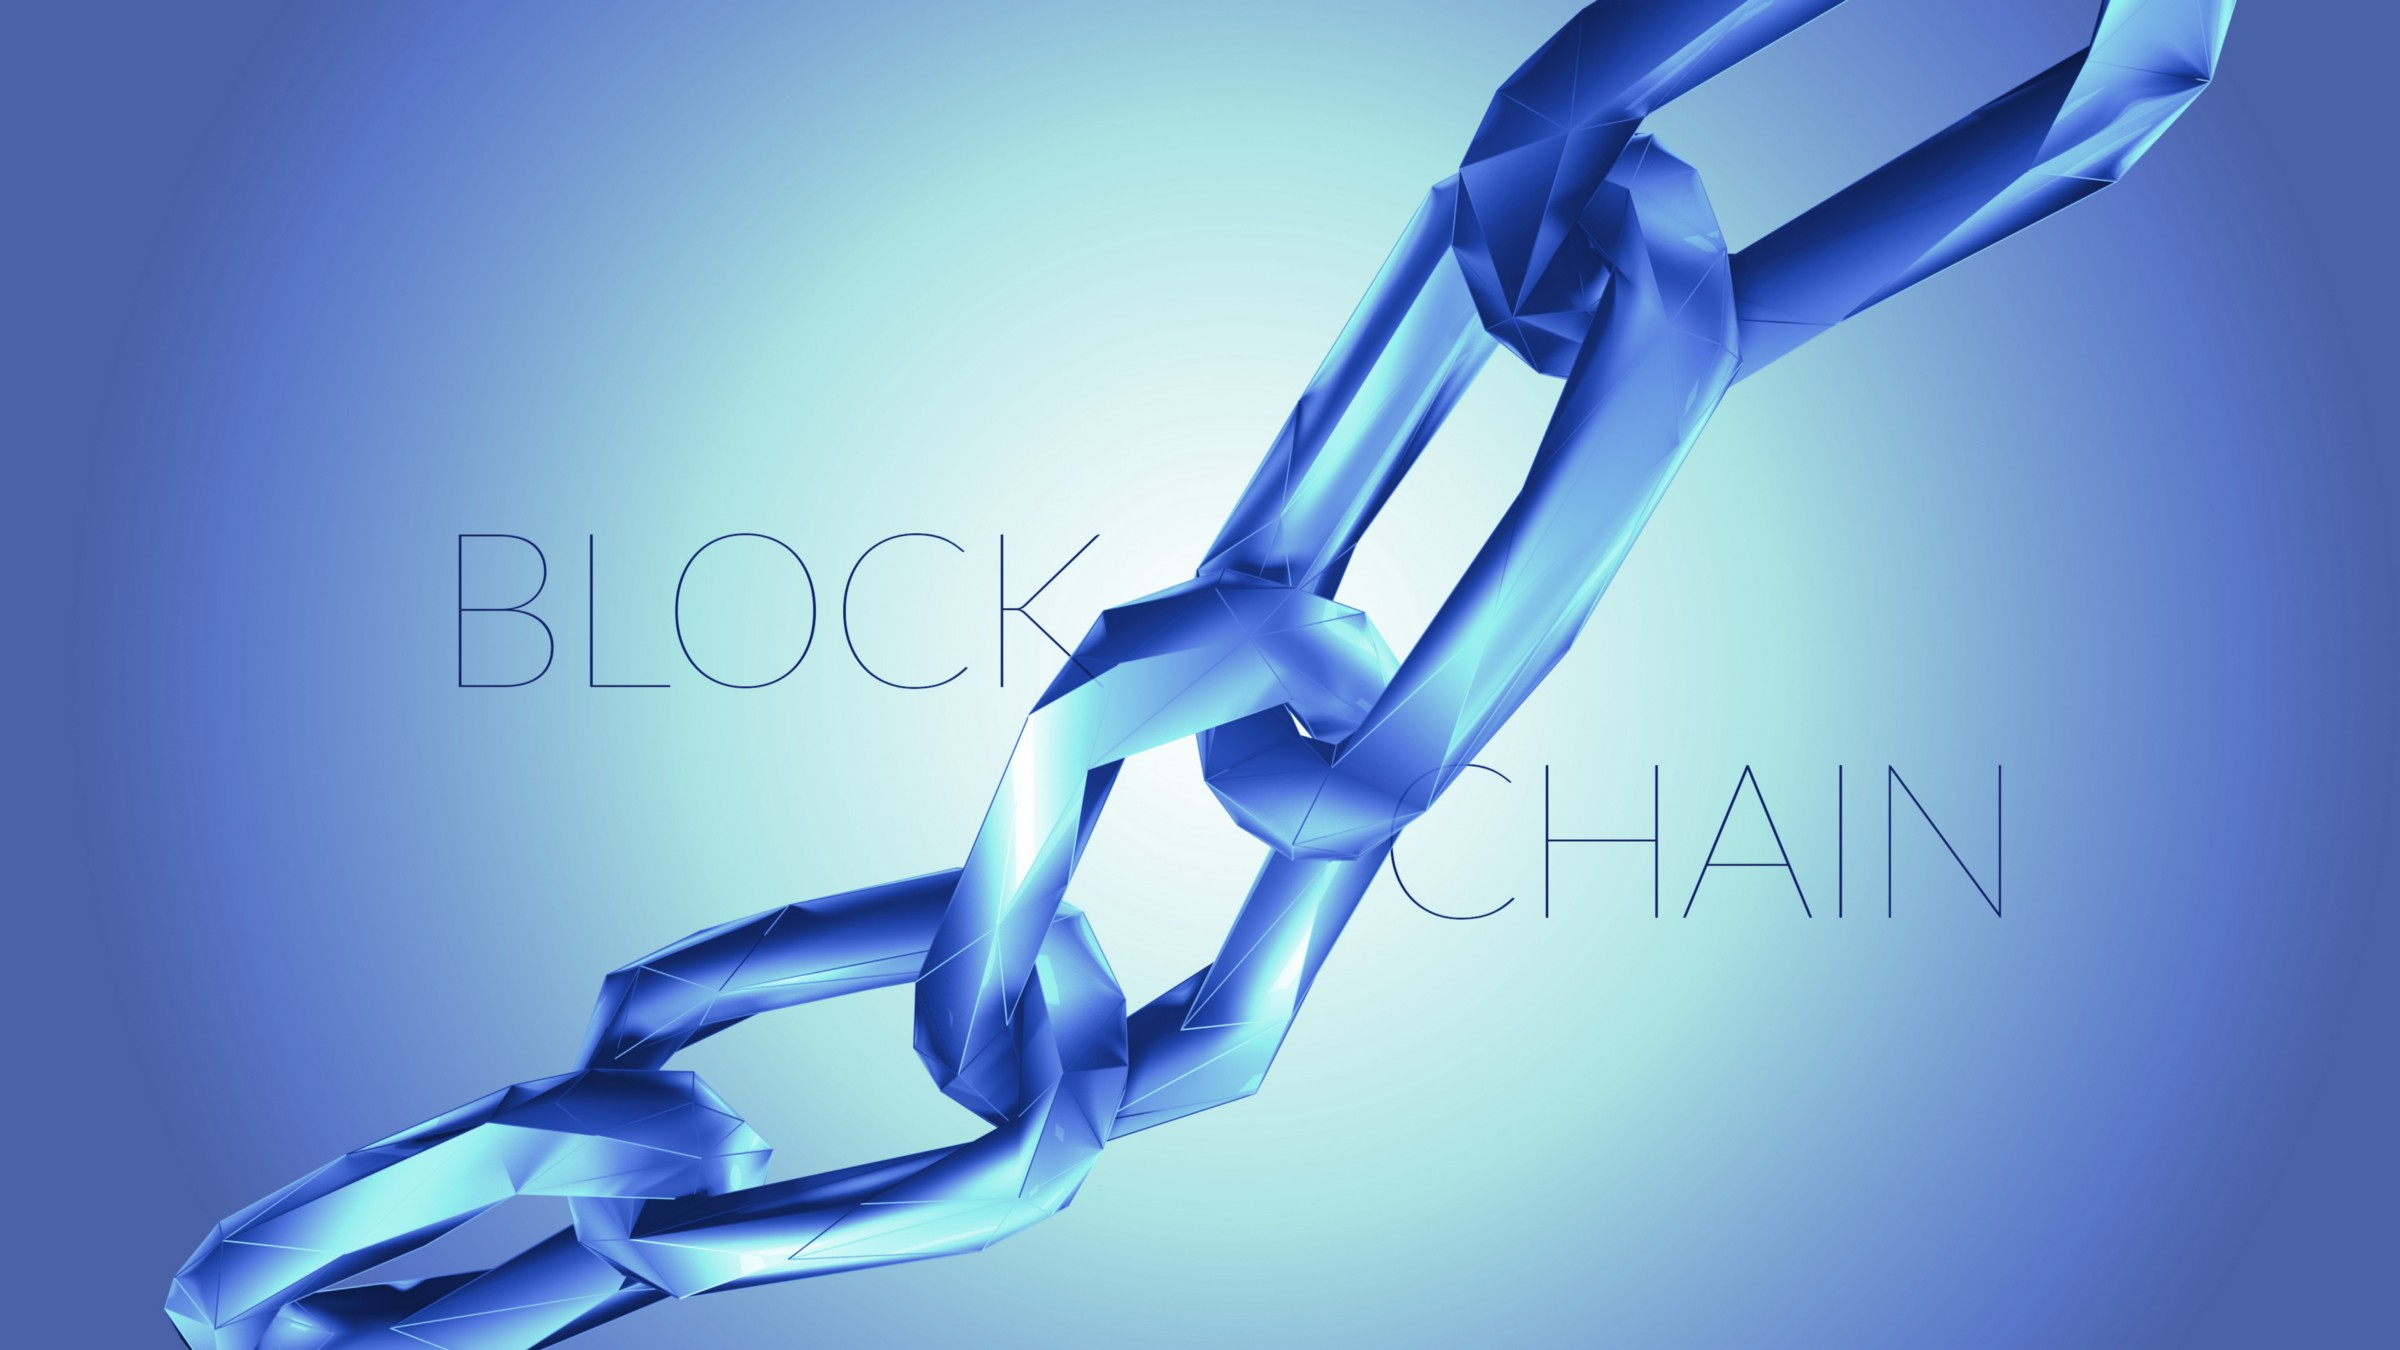 /seven-reasons-2017-is-a-make-or-break-year-for-blockchain-5487c7e8dcfe feature image